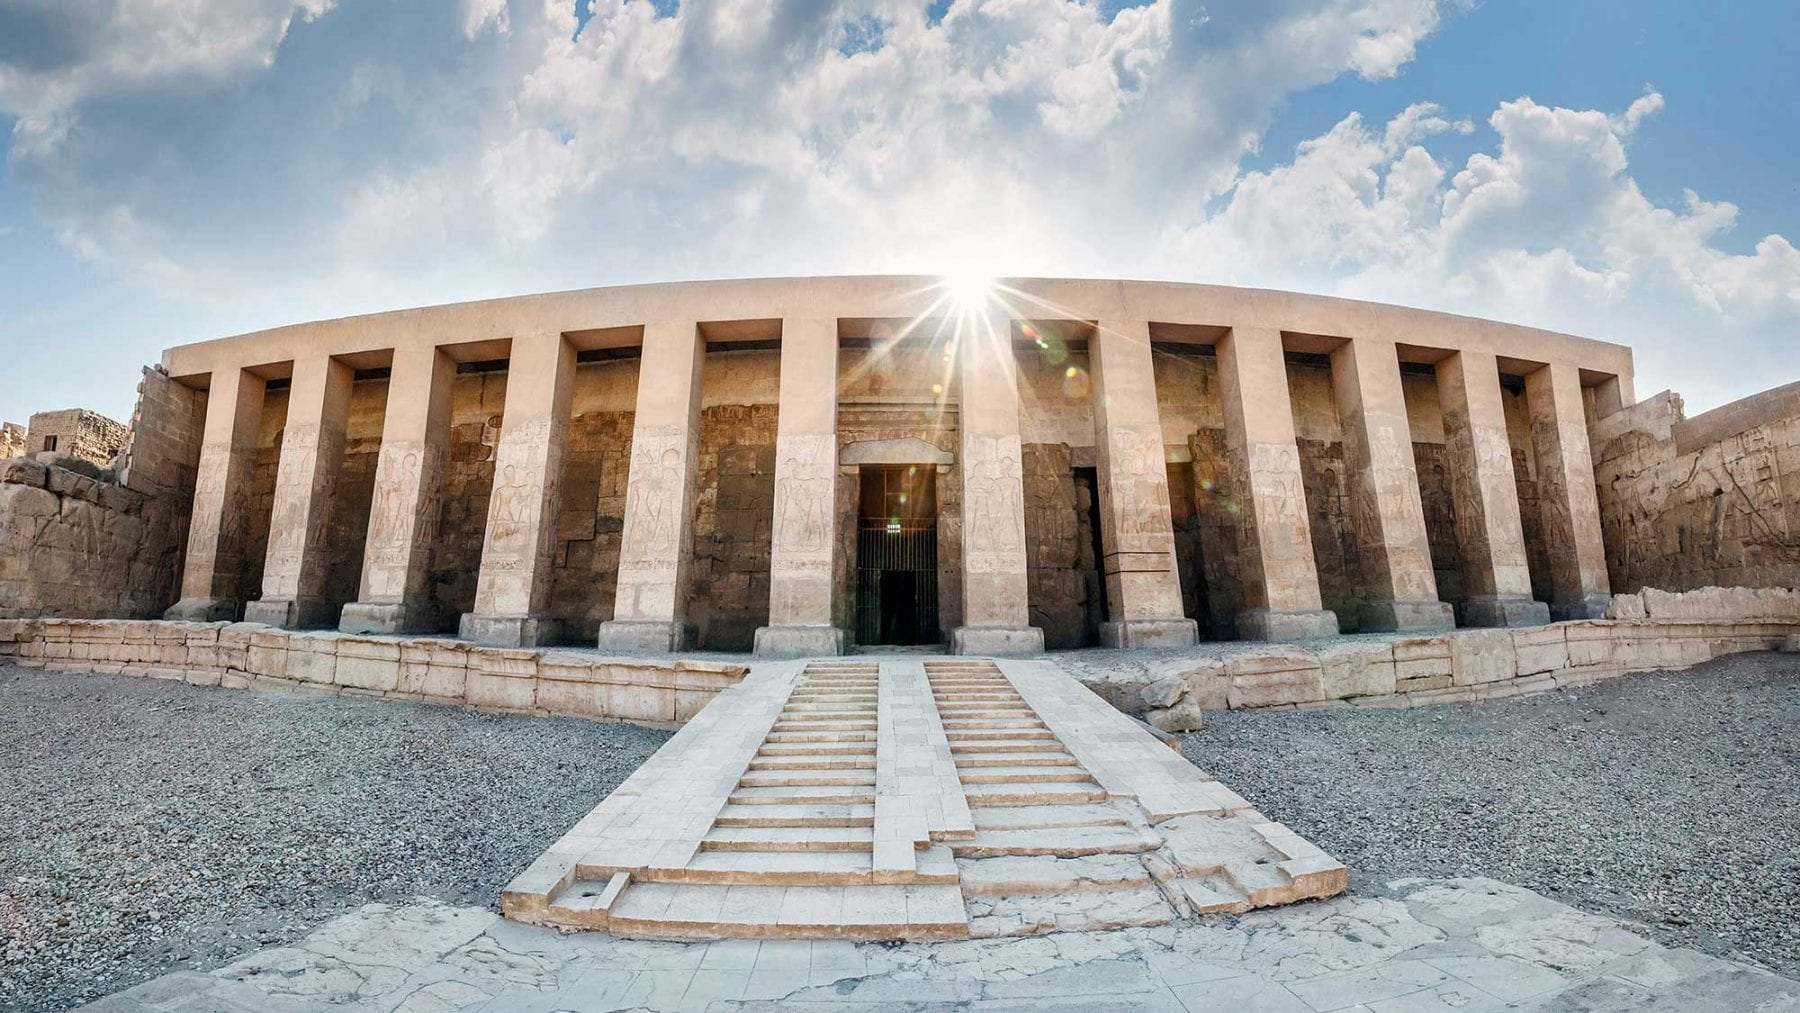 The Temple of Seti I in Abydos. Credit: HappyEgypt